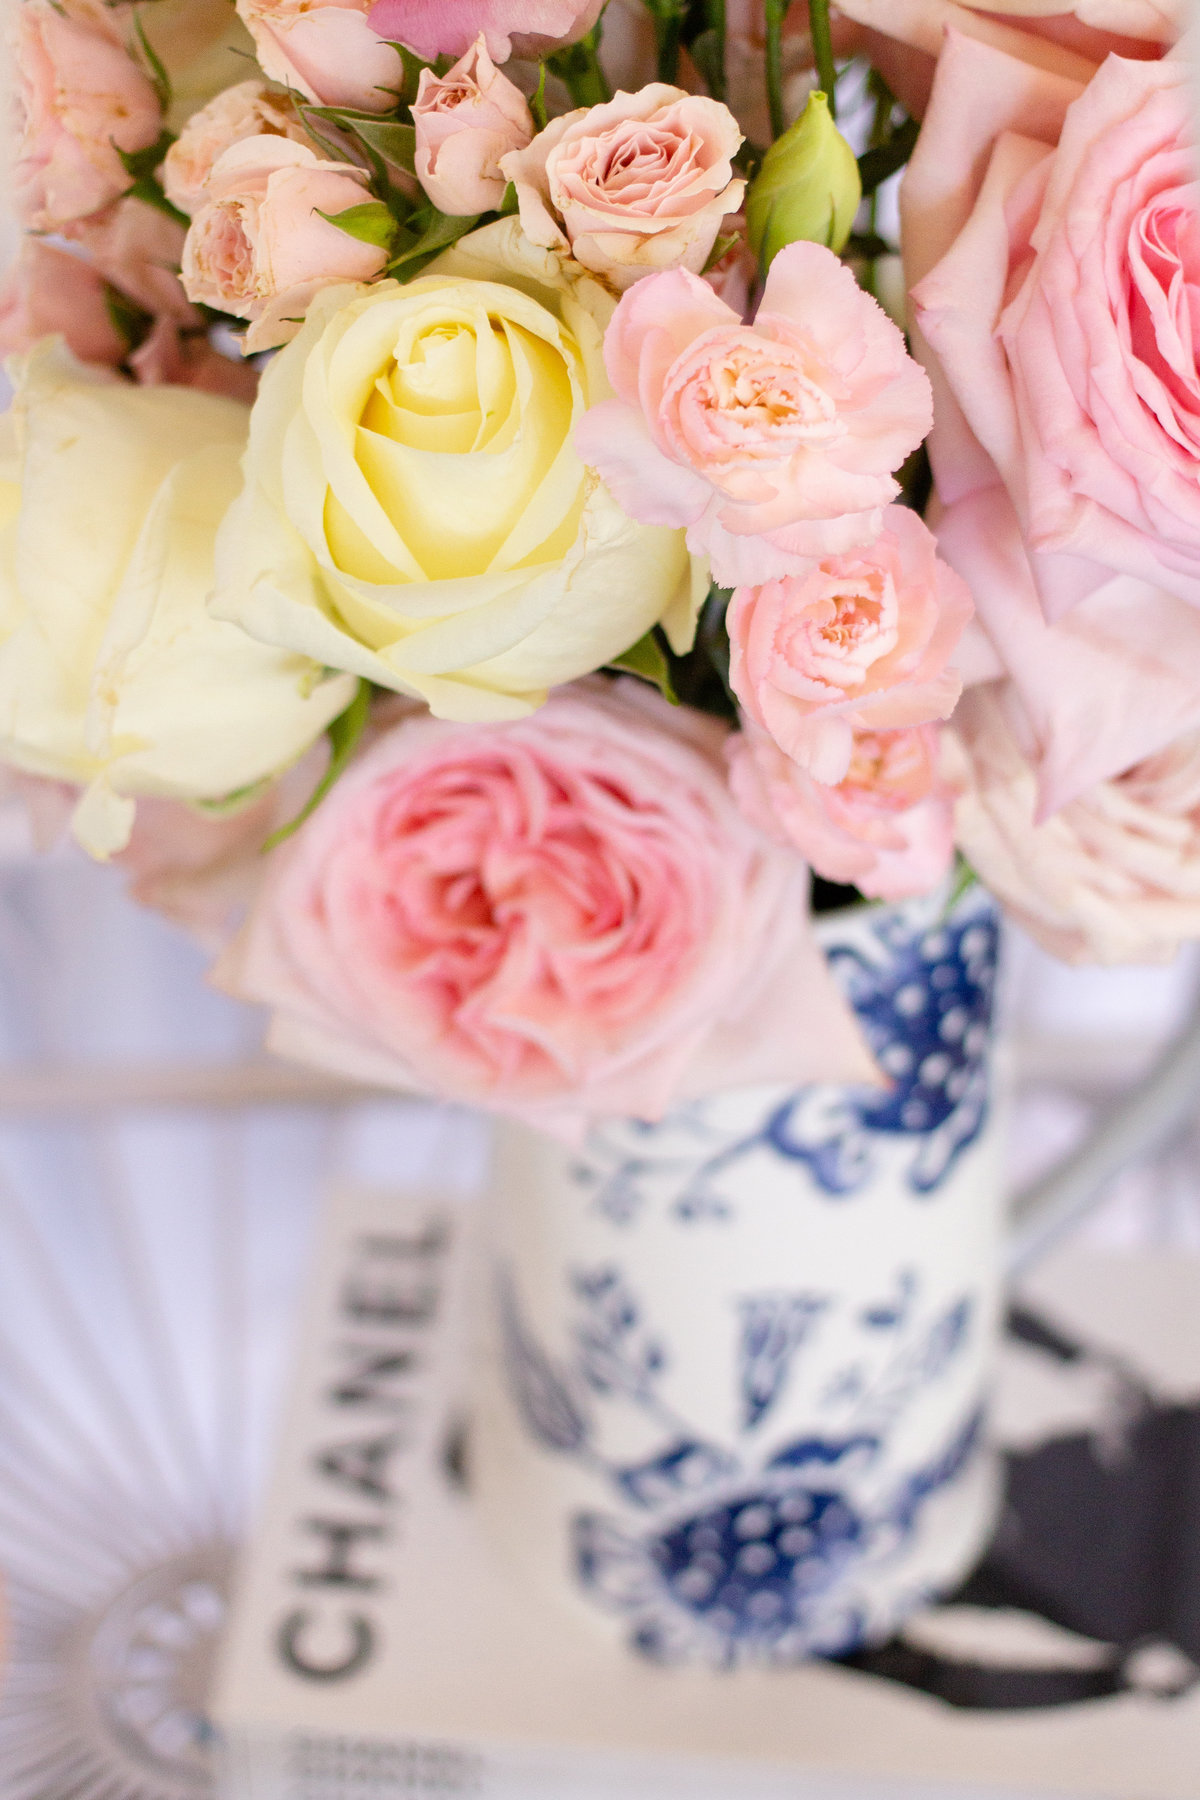 Blush wedding flowers in a luxury blue and white vase on Chanel magazine